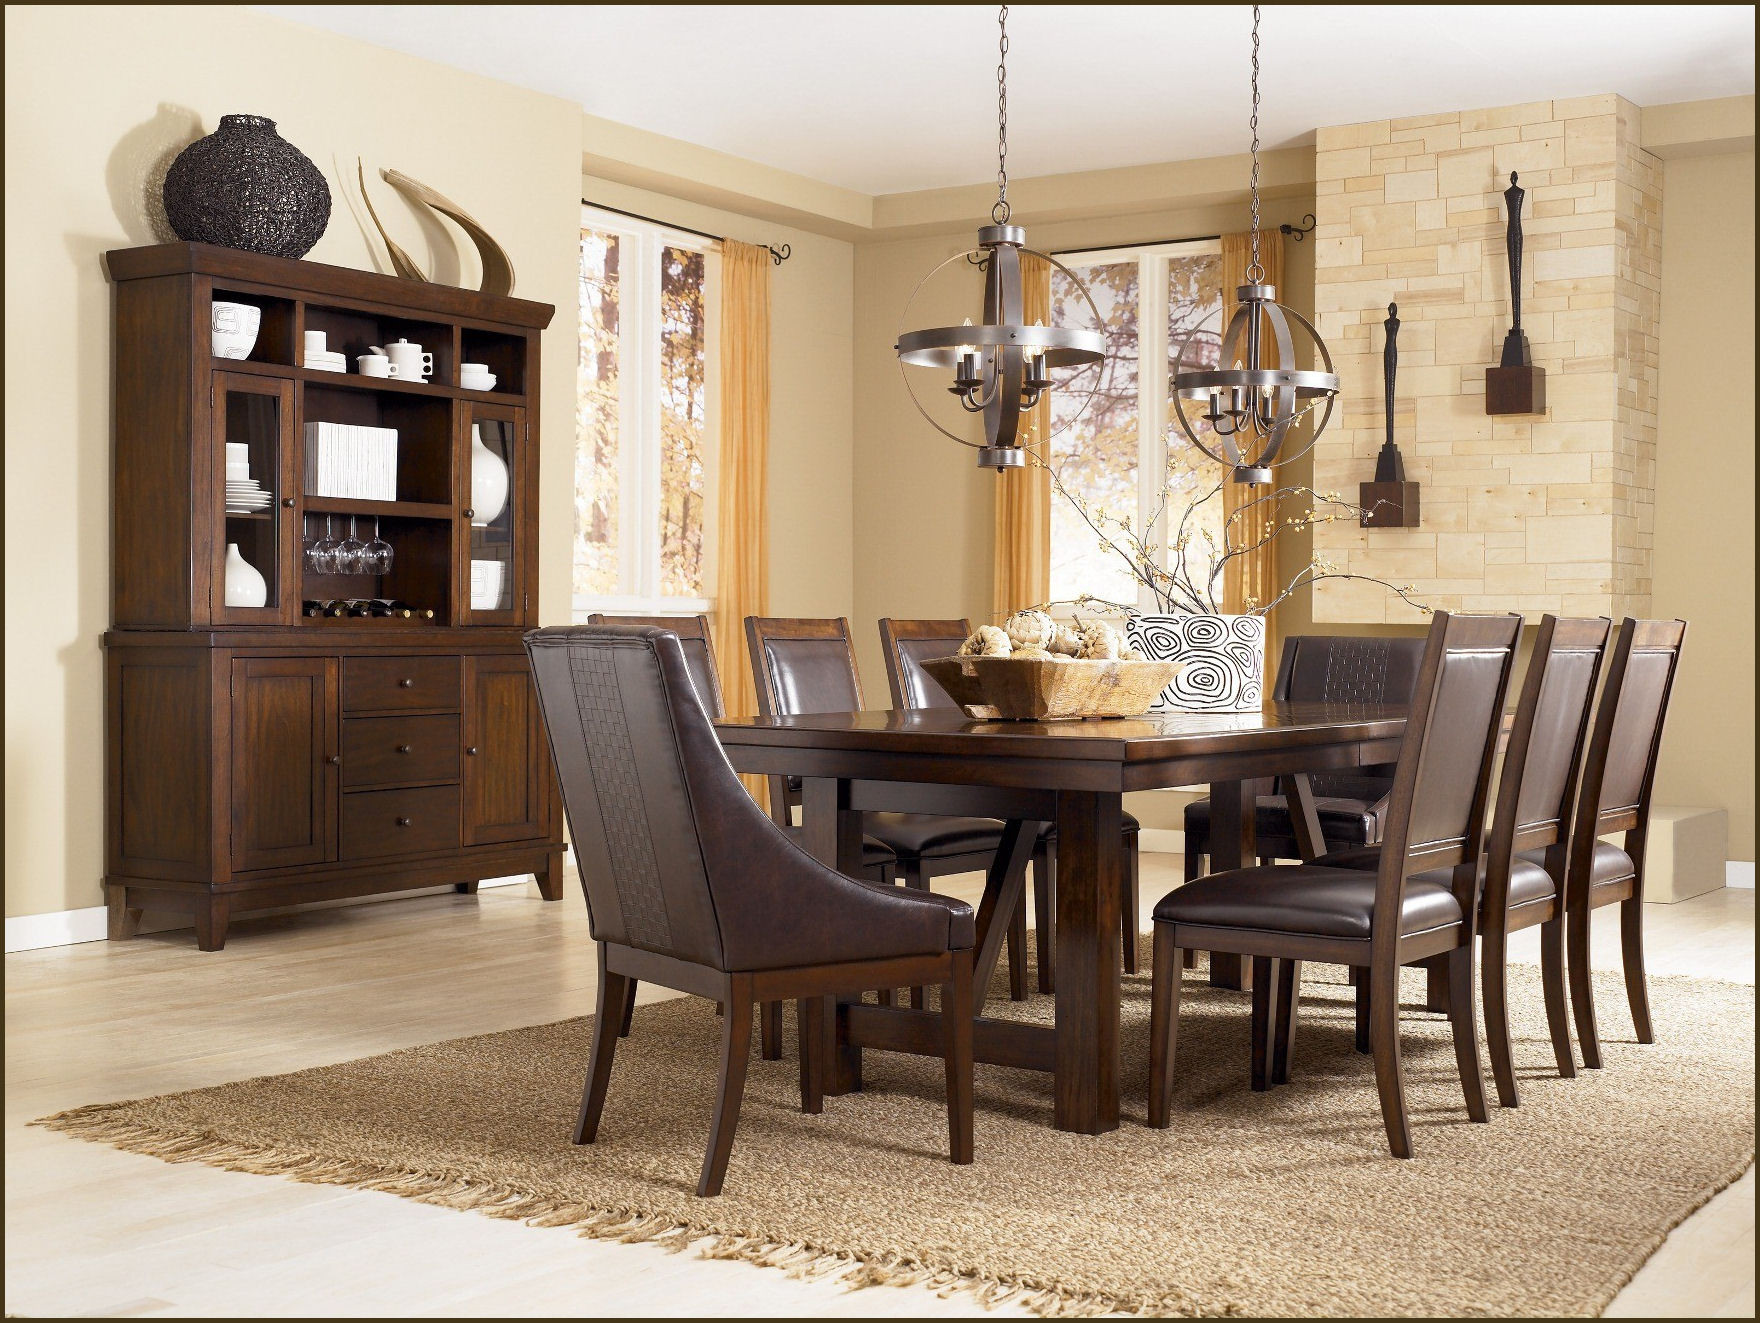 Best ideas about Ashley Furniture Dining Sets . Save or Pin Dining Room Sets At Ashley Furniture Now.